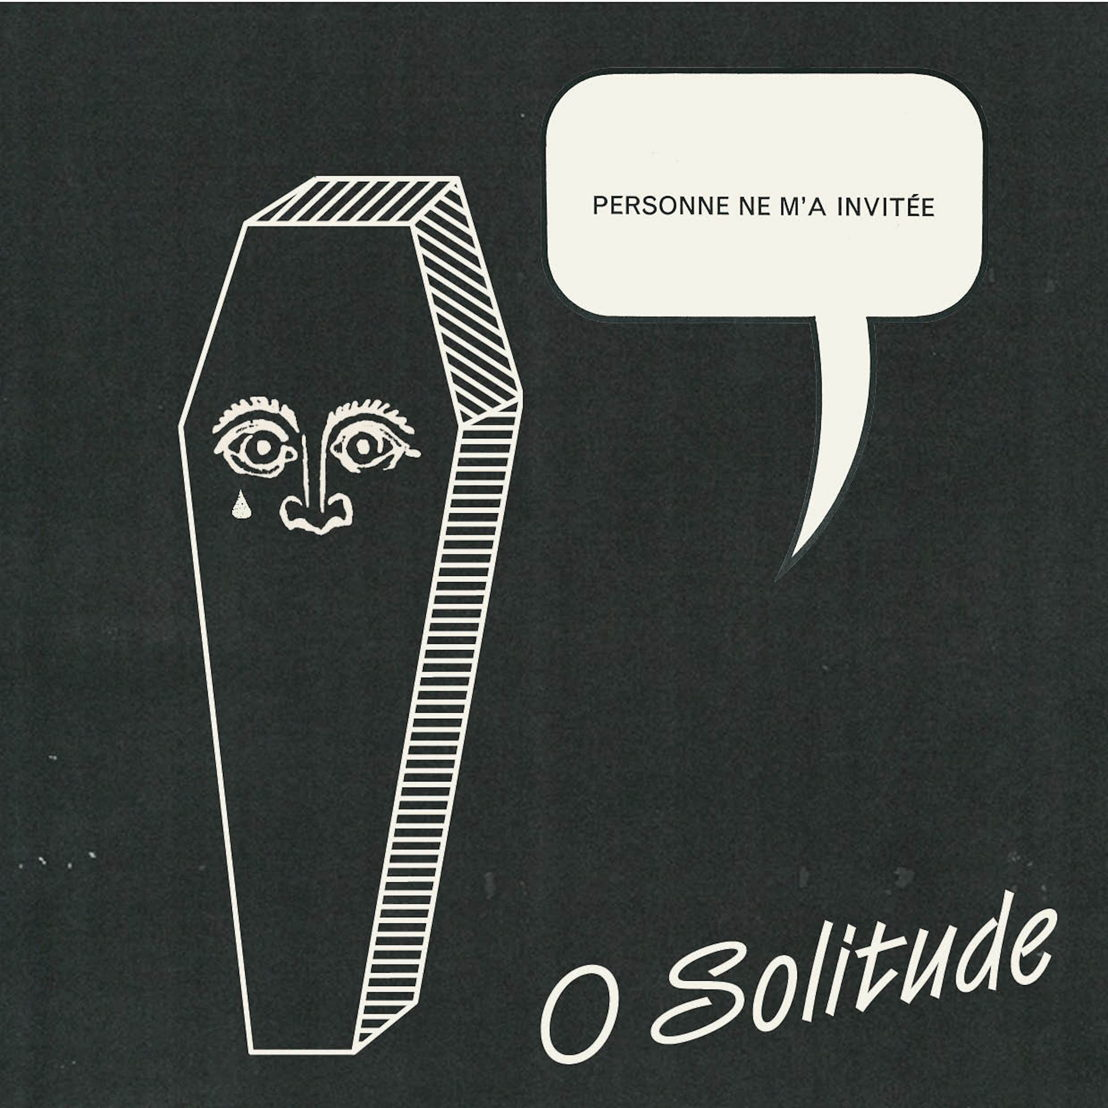 O Solitude - affichebeeld